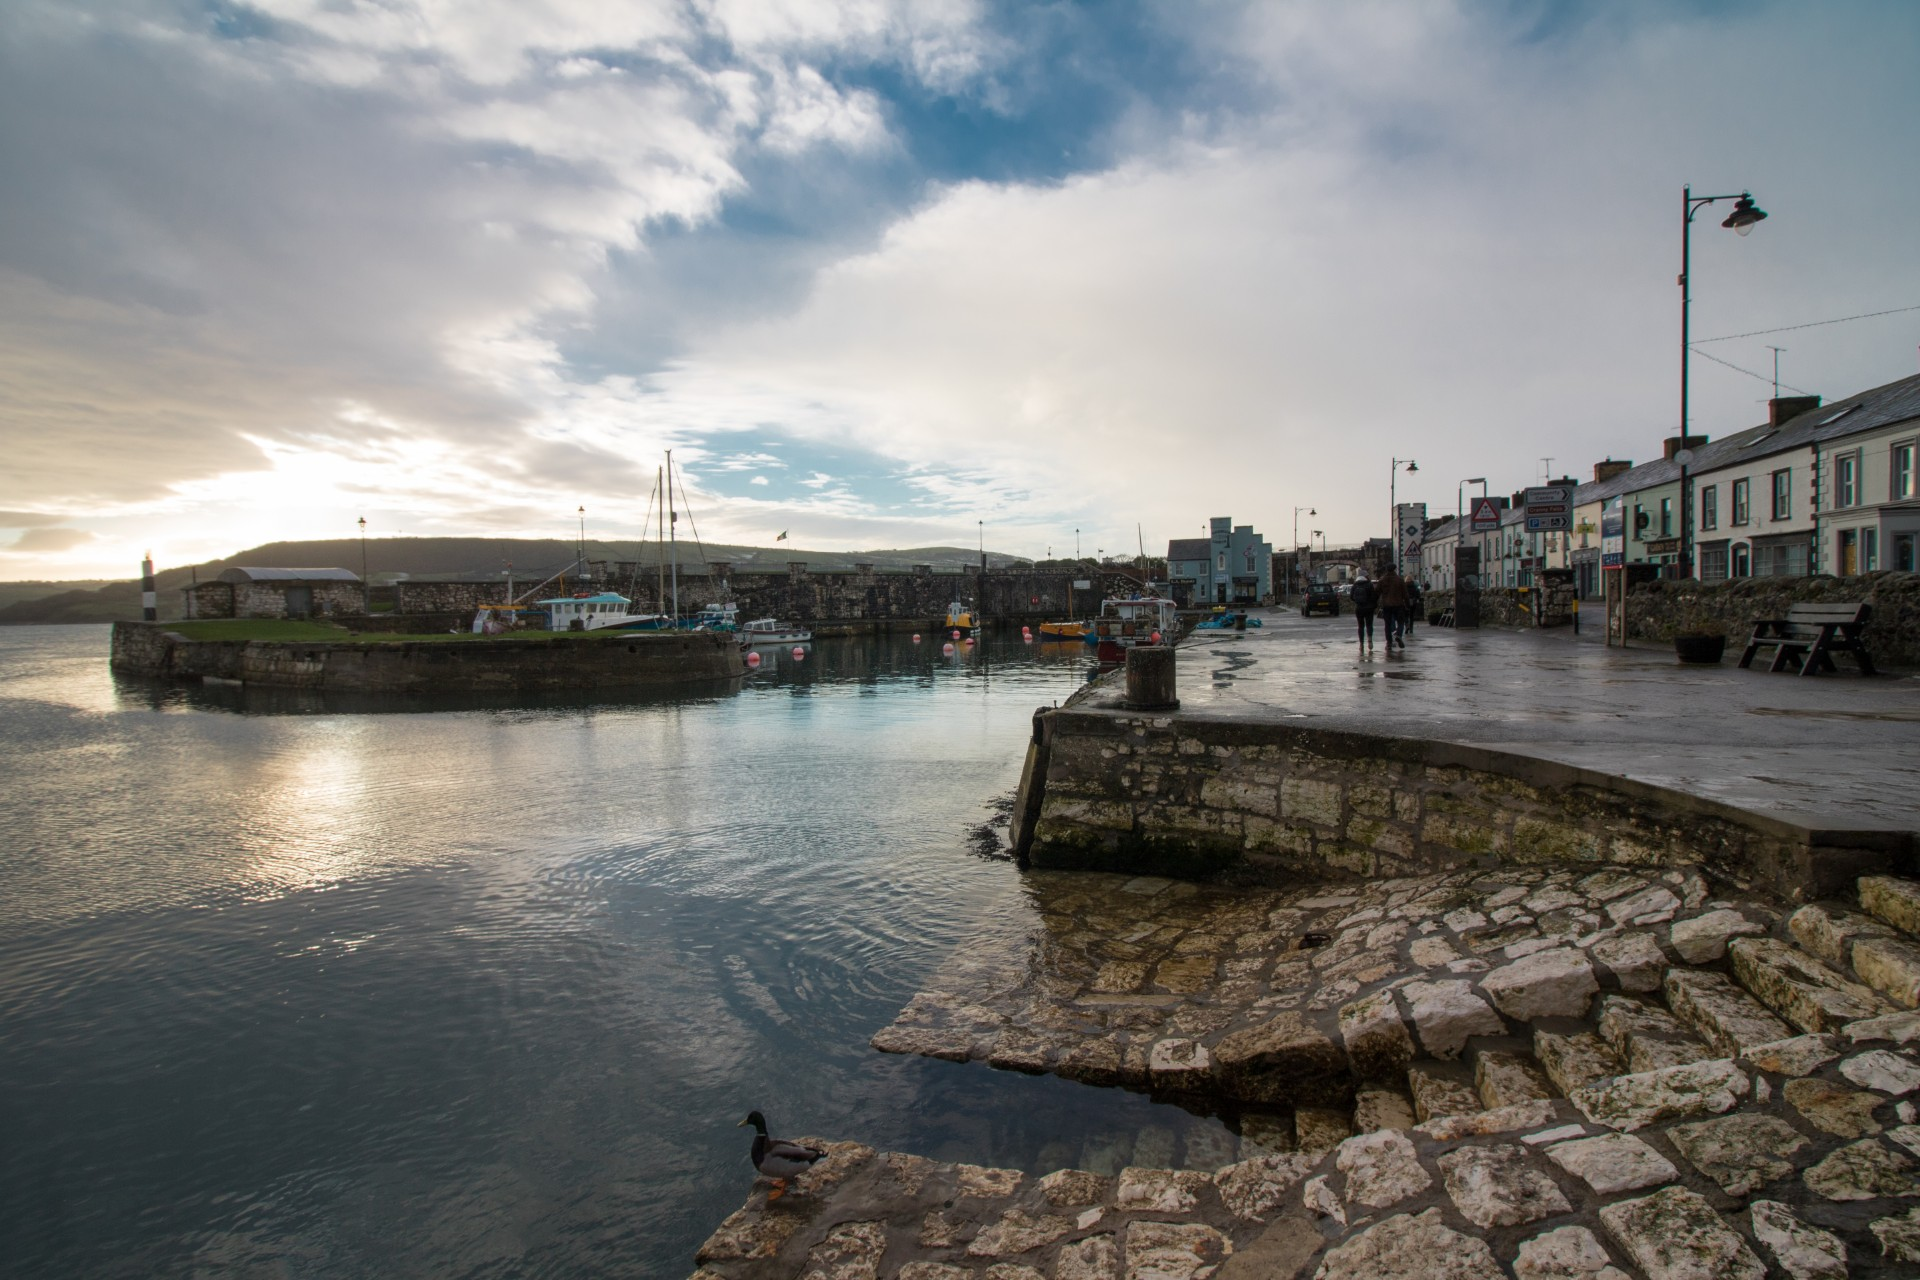 steps-leading-to-water-in-carnlough-season-6-episode-7-of-game-of-thrones-the-broken-man-filming-location